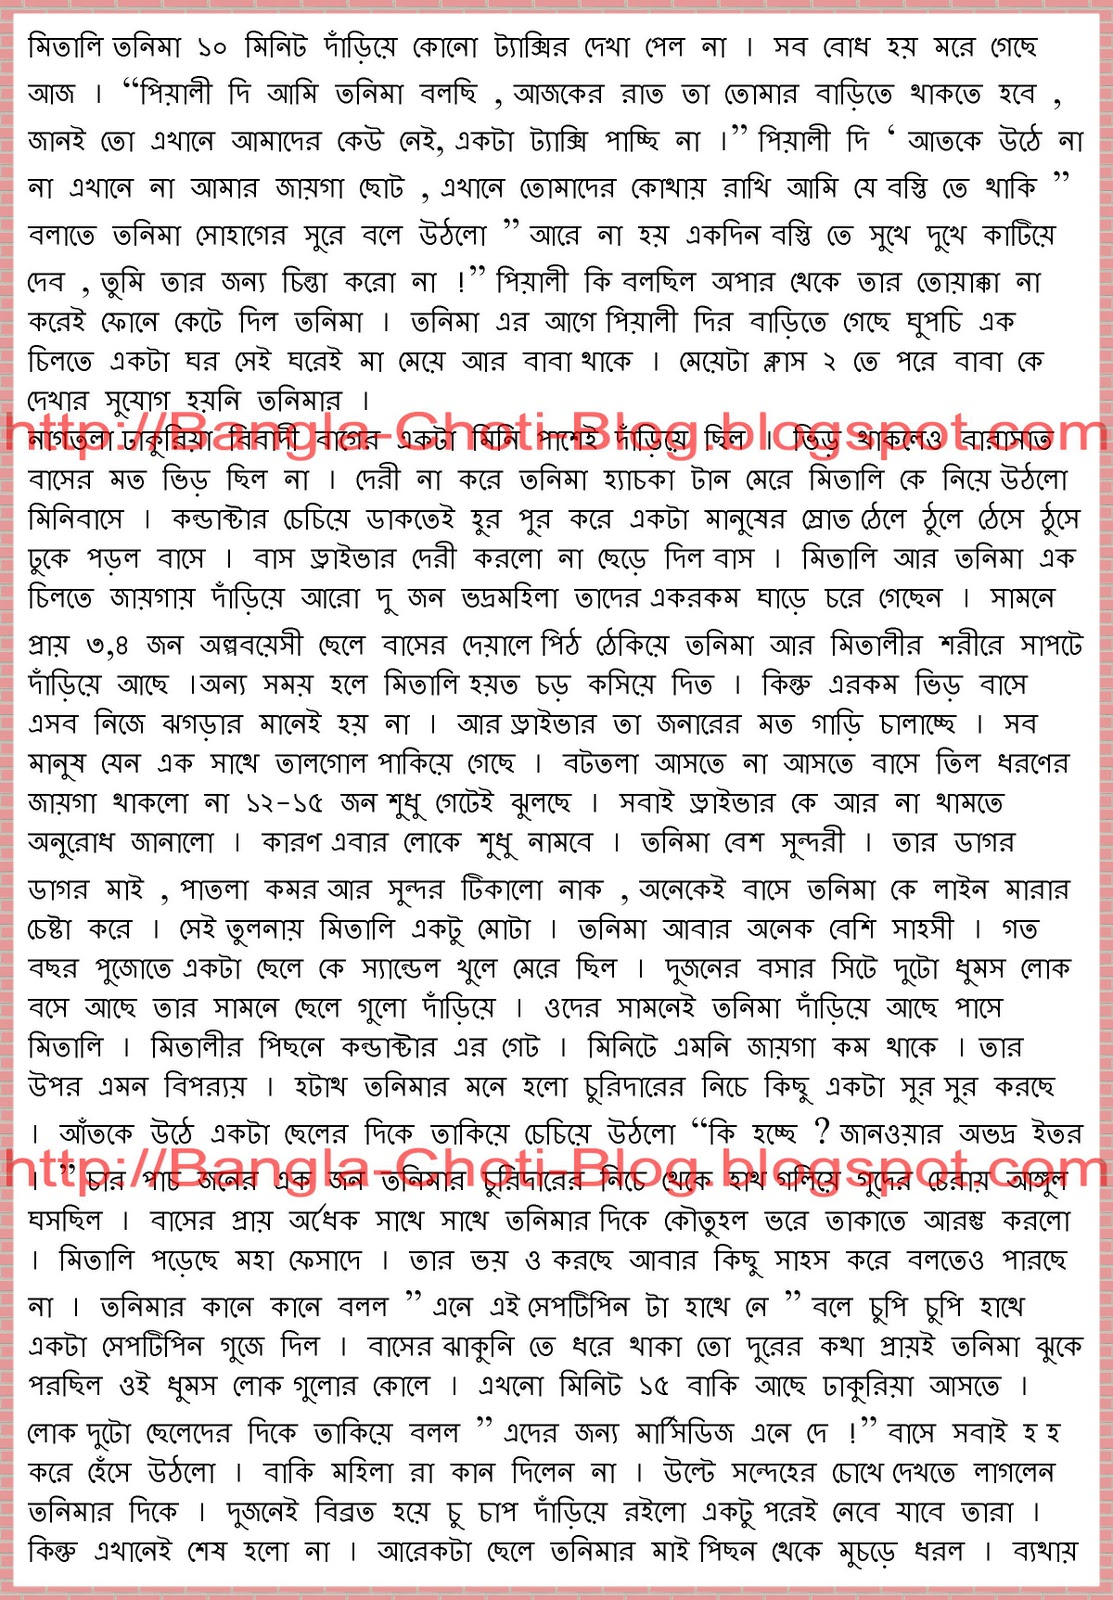 Bangla Panu Golpo In Bangla Font Pdf